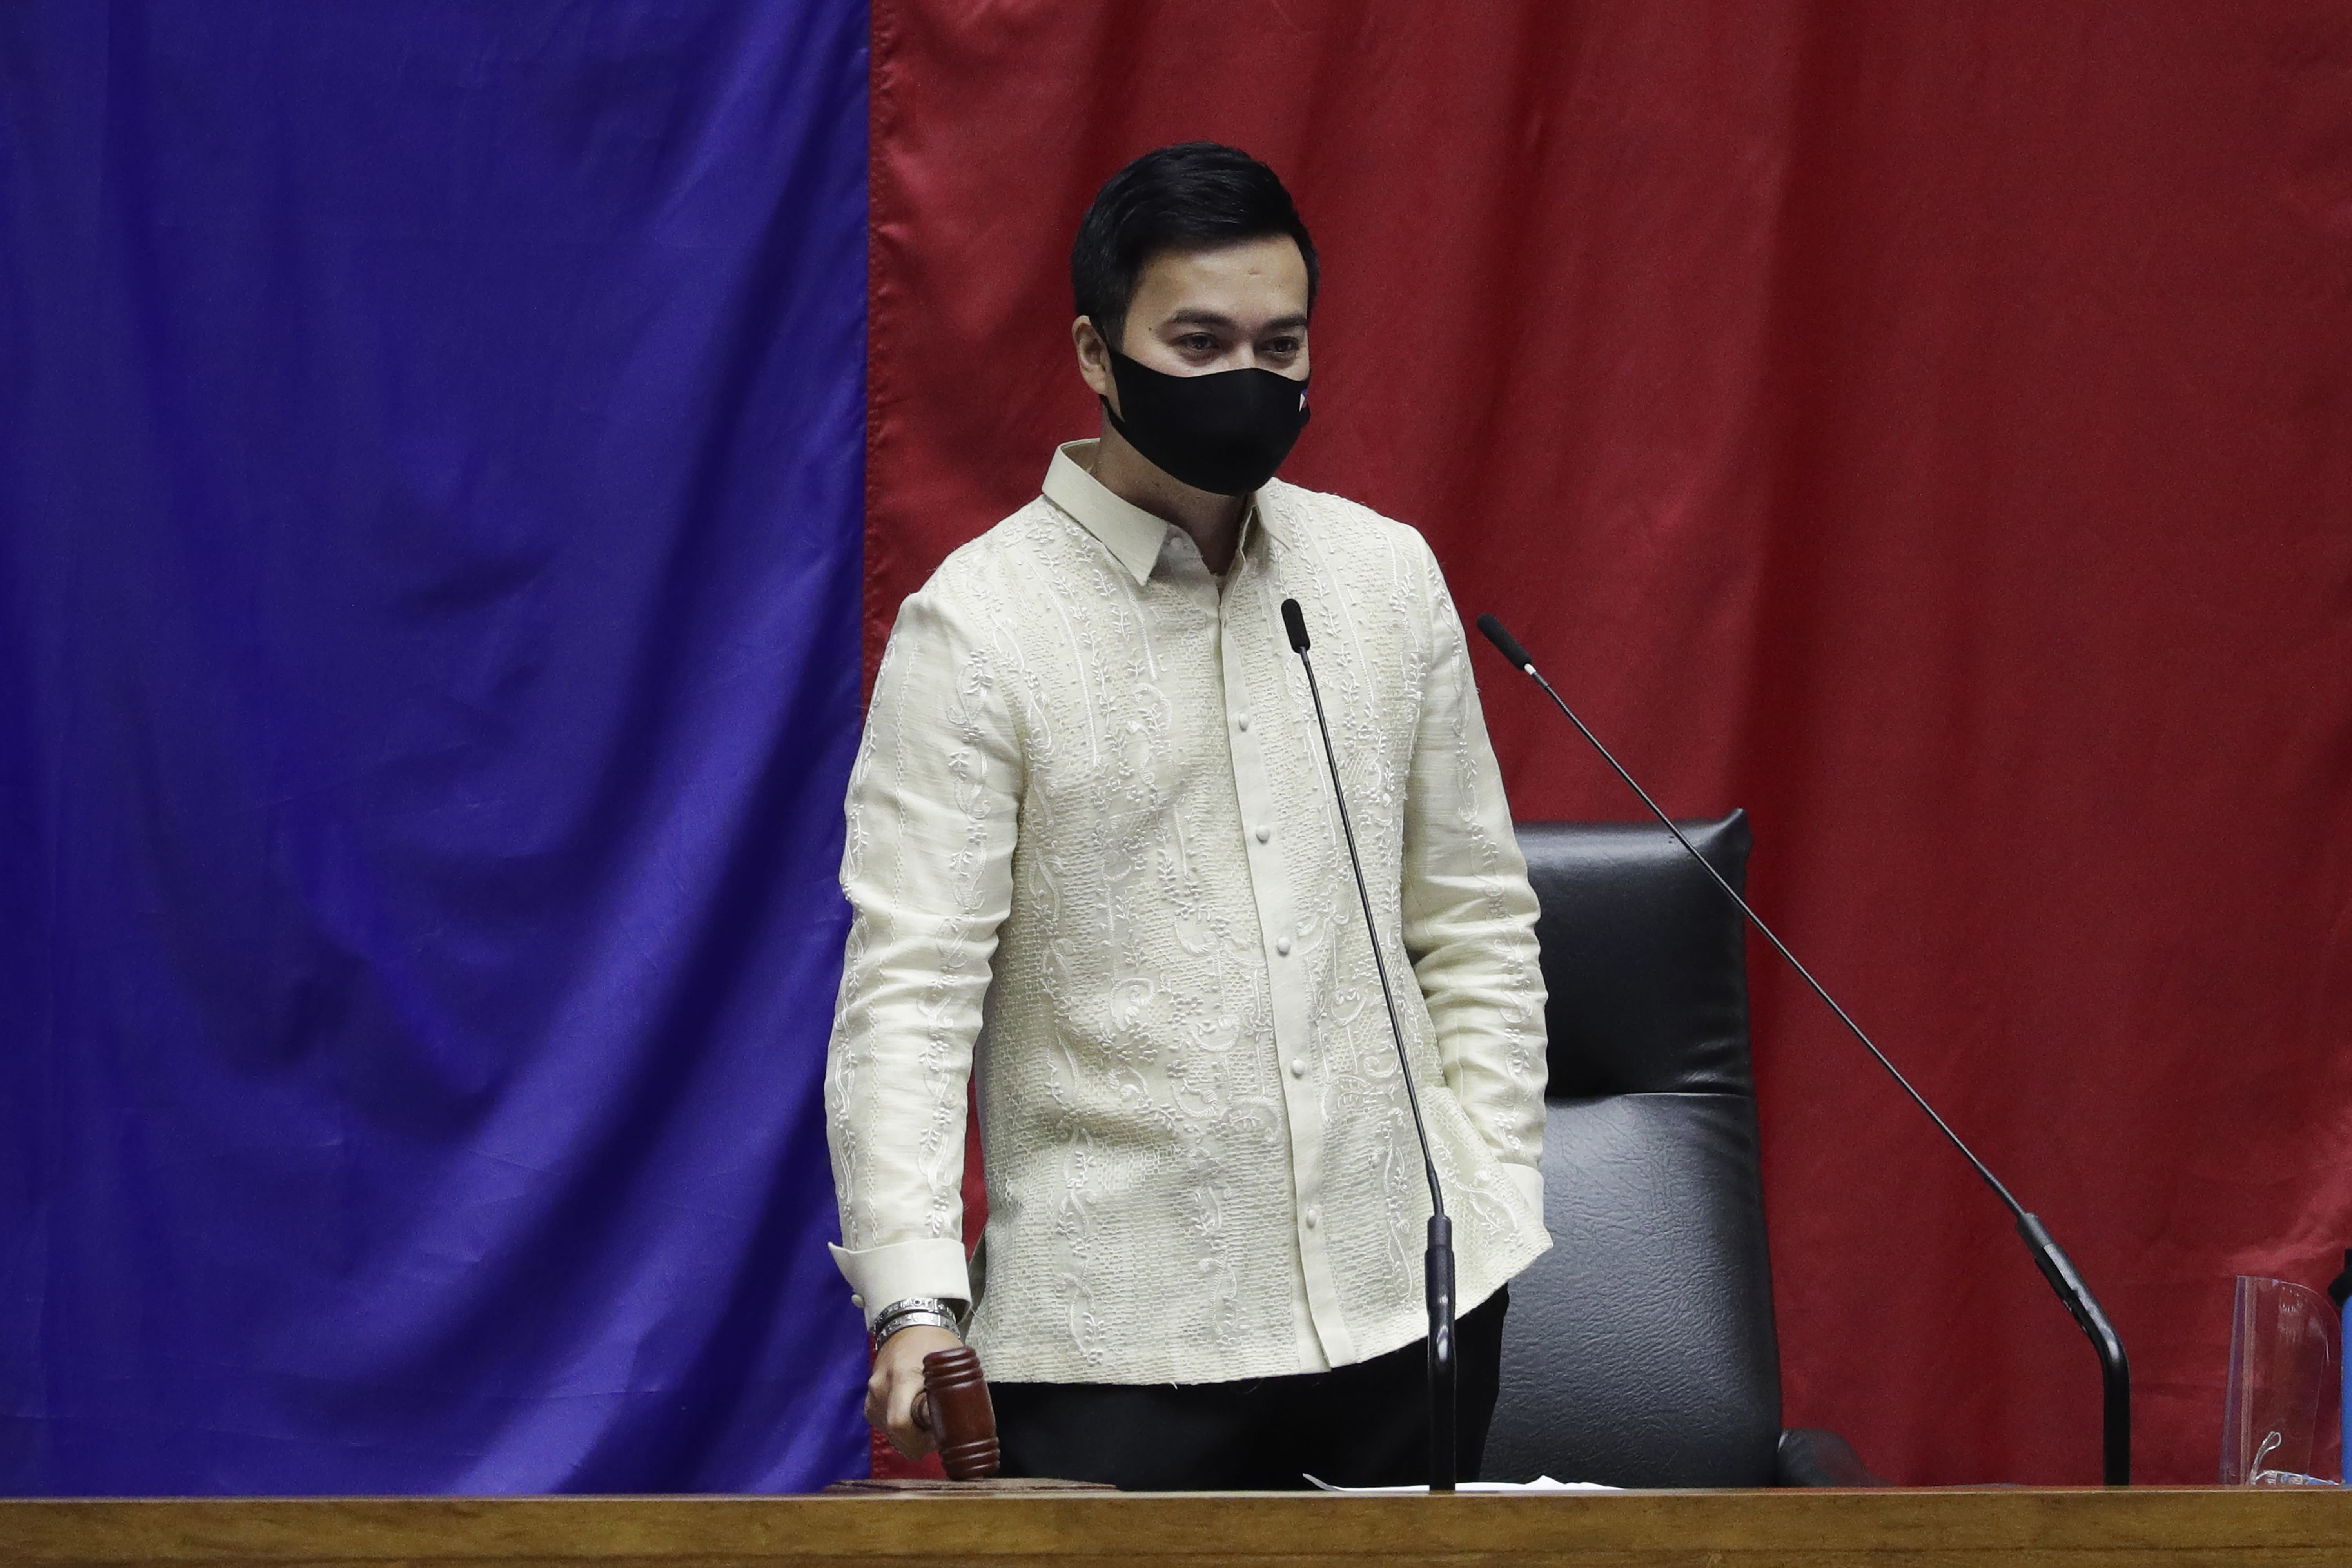 New House Speaker Lord Allan Velasco bangs the gavel during his first day at the House of Representatives in Quezon city, Philippines on Tuesday, Oct. 13, 2020. A large faction of Philippine legislators in the House of Representatives elected a new leader Monday in a tense political standoff between two allies of the president. (AP Photo/Aaron Favila)